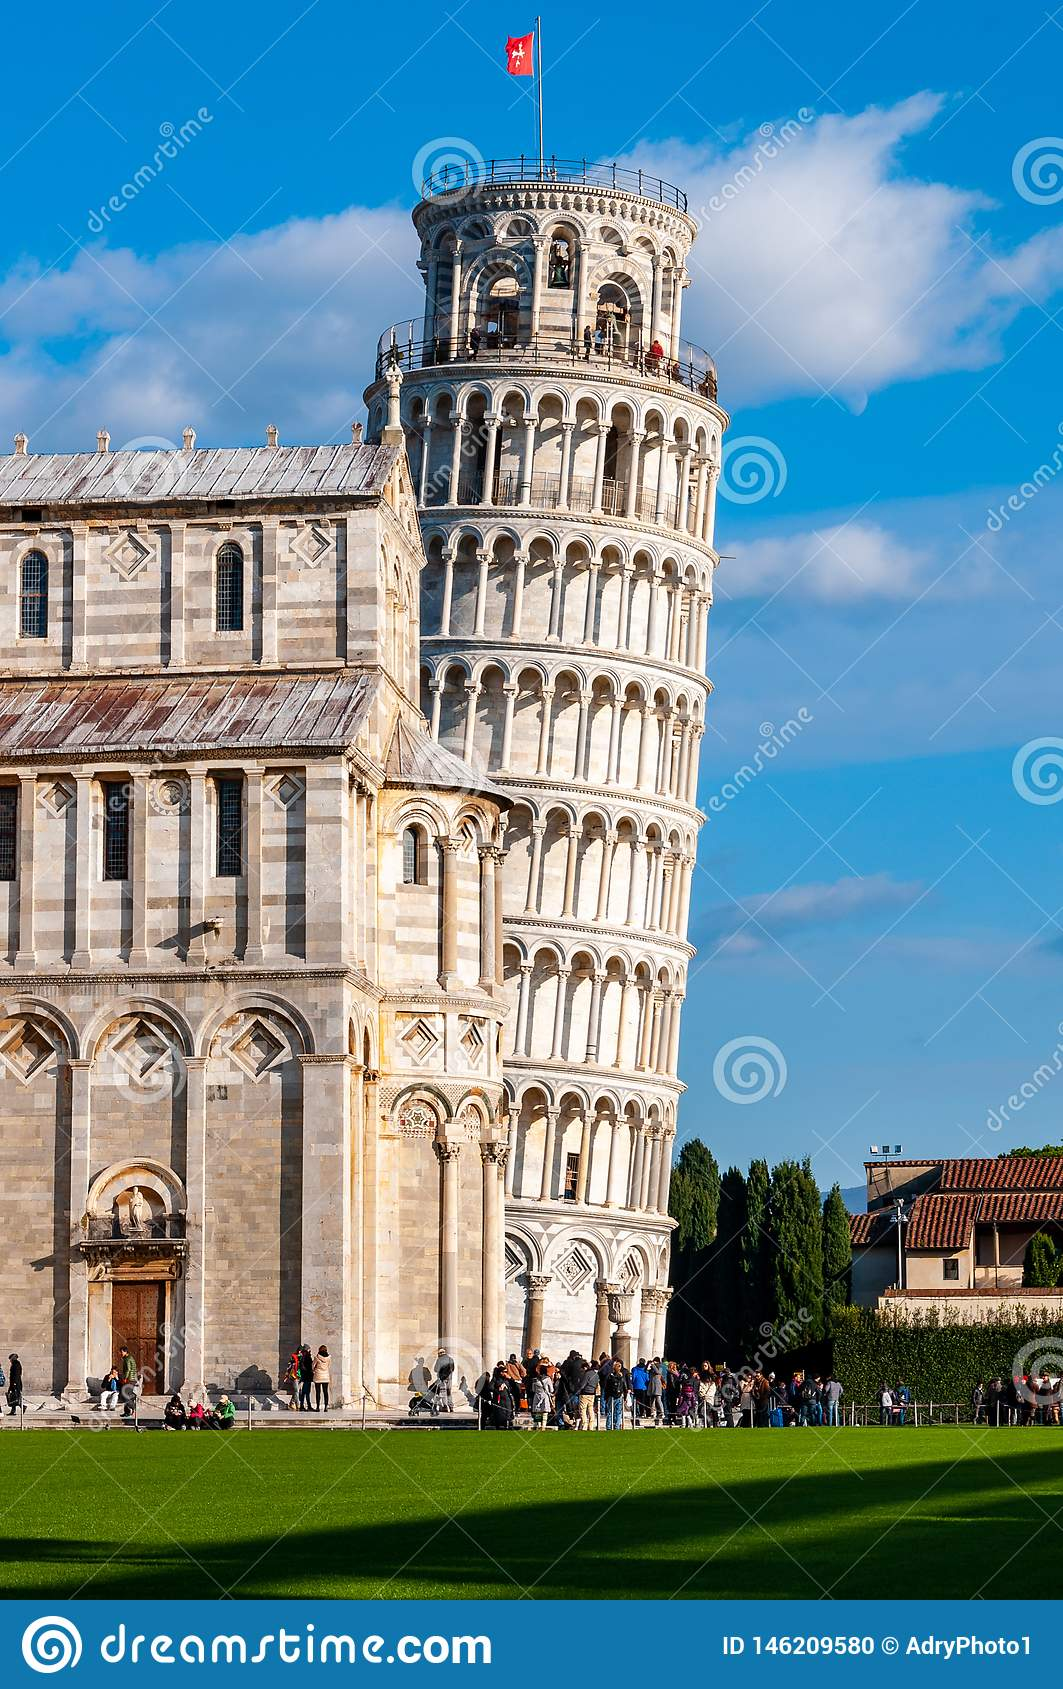 Leaning tower of Pisa in Piazza dei Miracoli